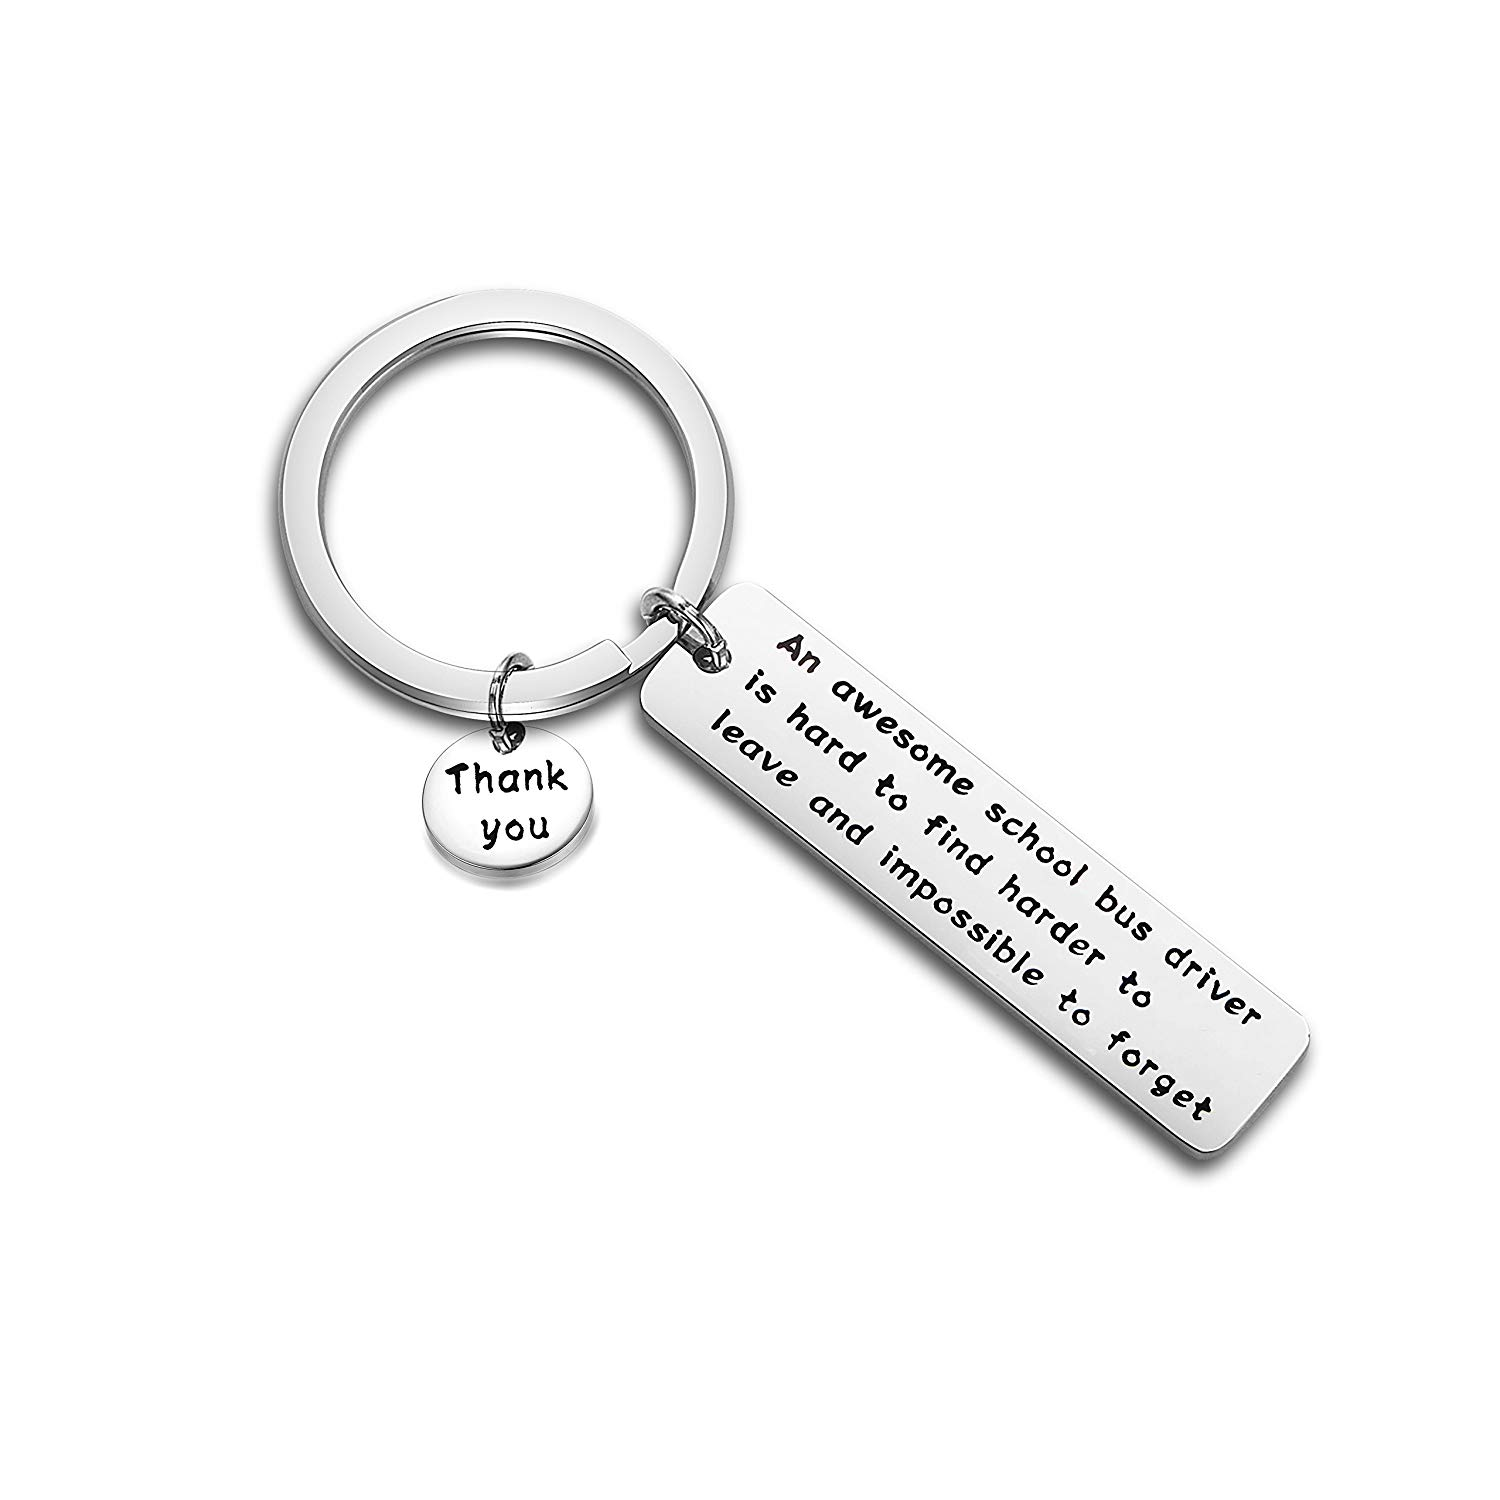 Drive Safe Keychain, Personalized Anniversary Gifts for Men